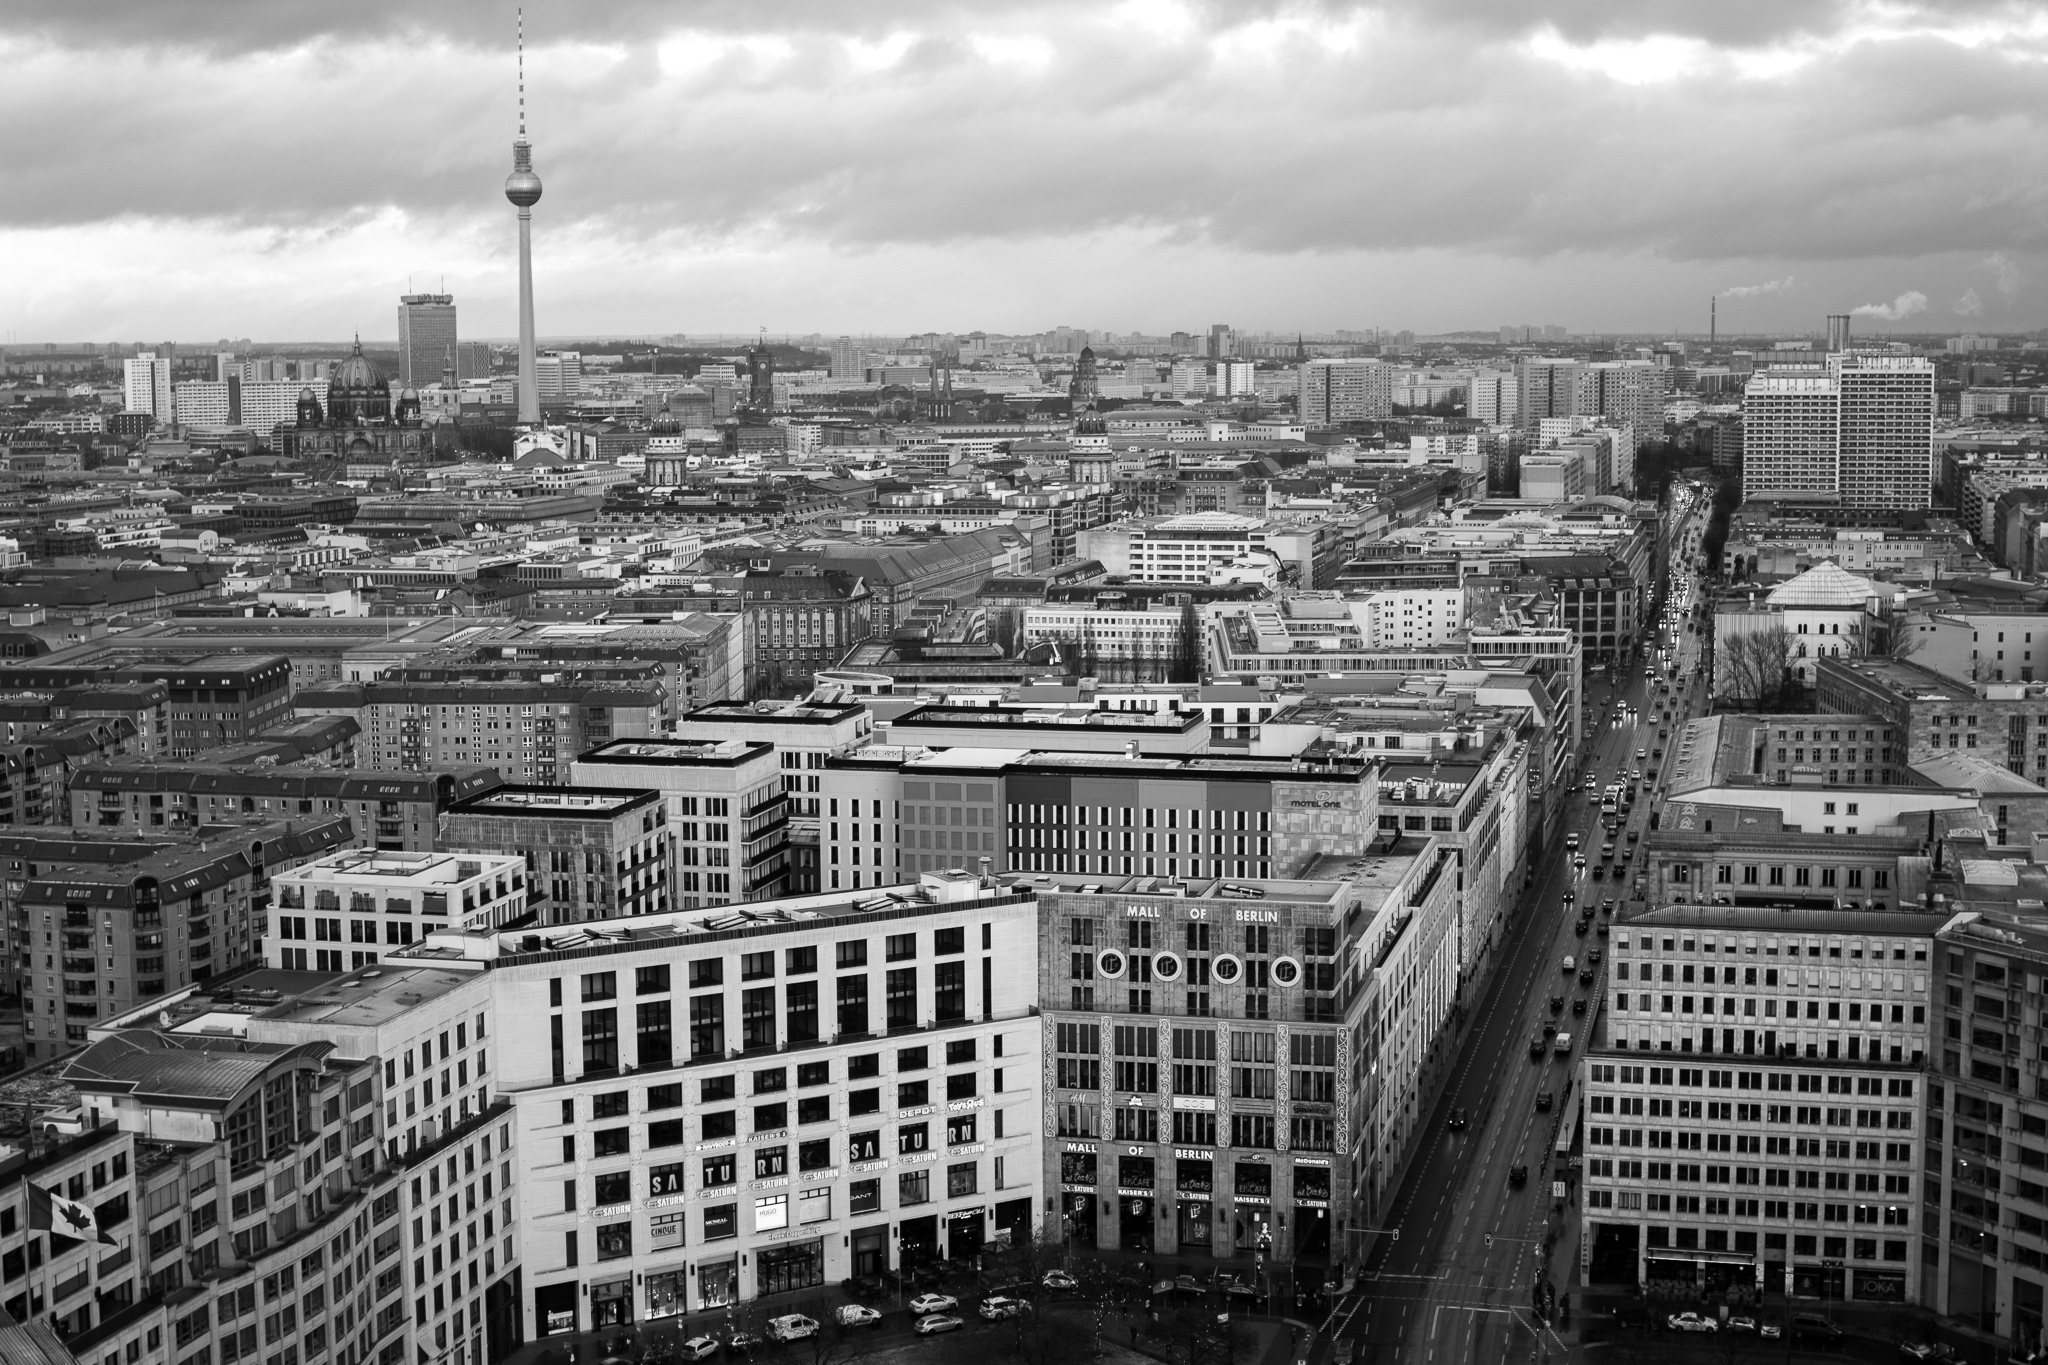 The city of Berlin, capital of Germany and situated in the northeast of the country, has 3.5 million inhabitants. <br>Considered a cultural and artistic center, it has an area of ​​892 square kilometers.